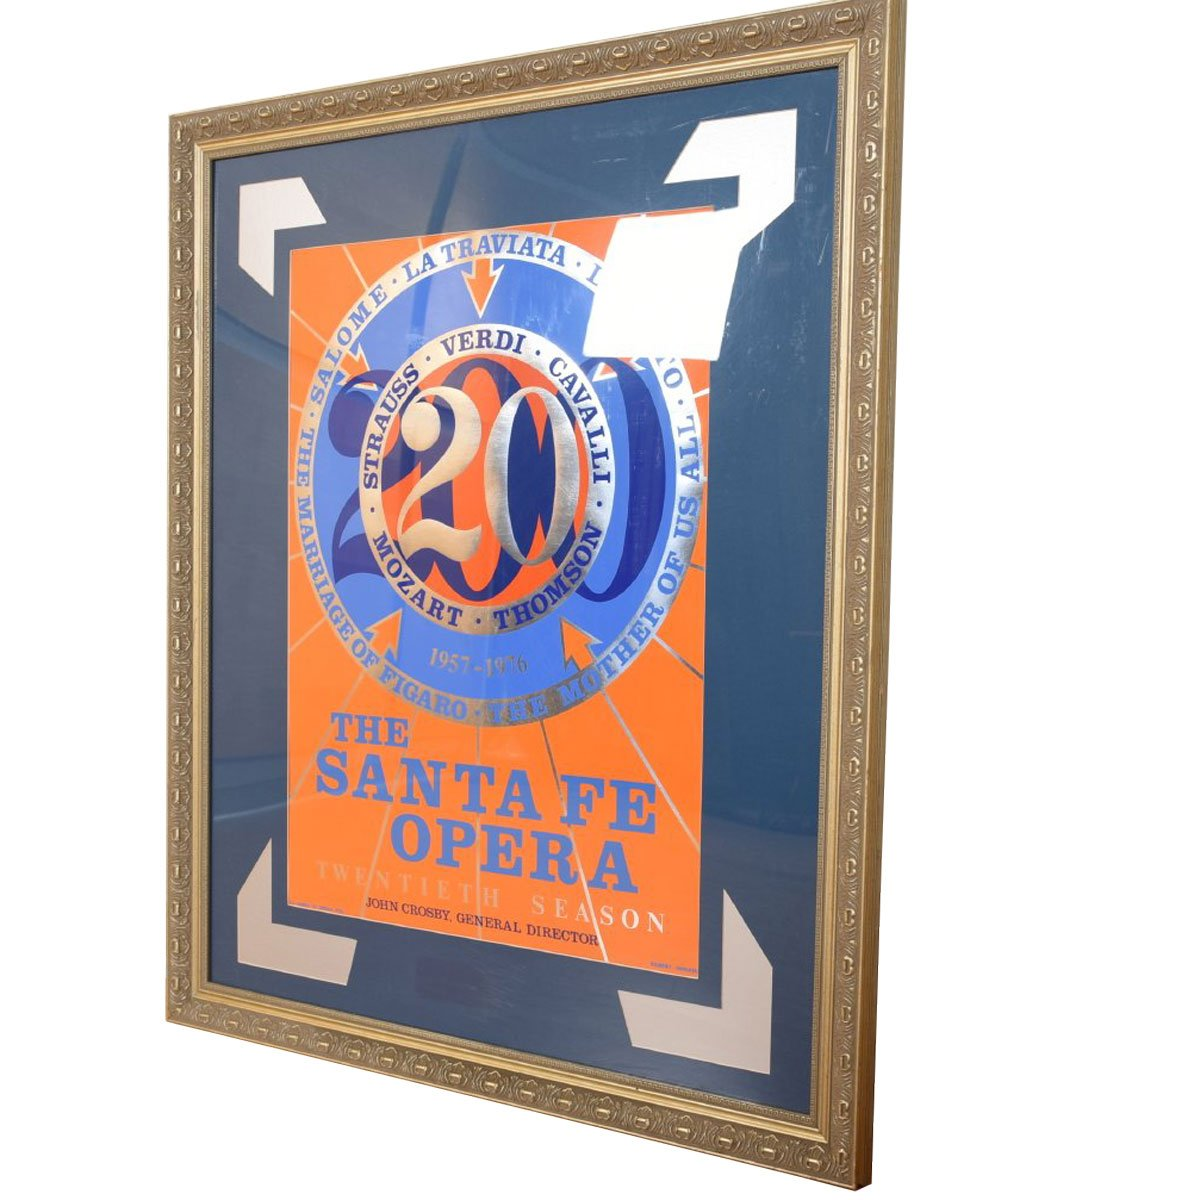 Framed Poster by Robert Indiana for the Santa Fe Opera, 1976